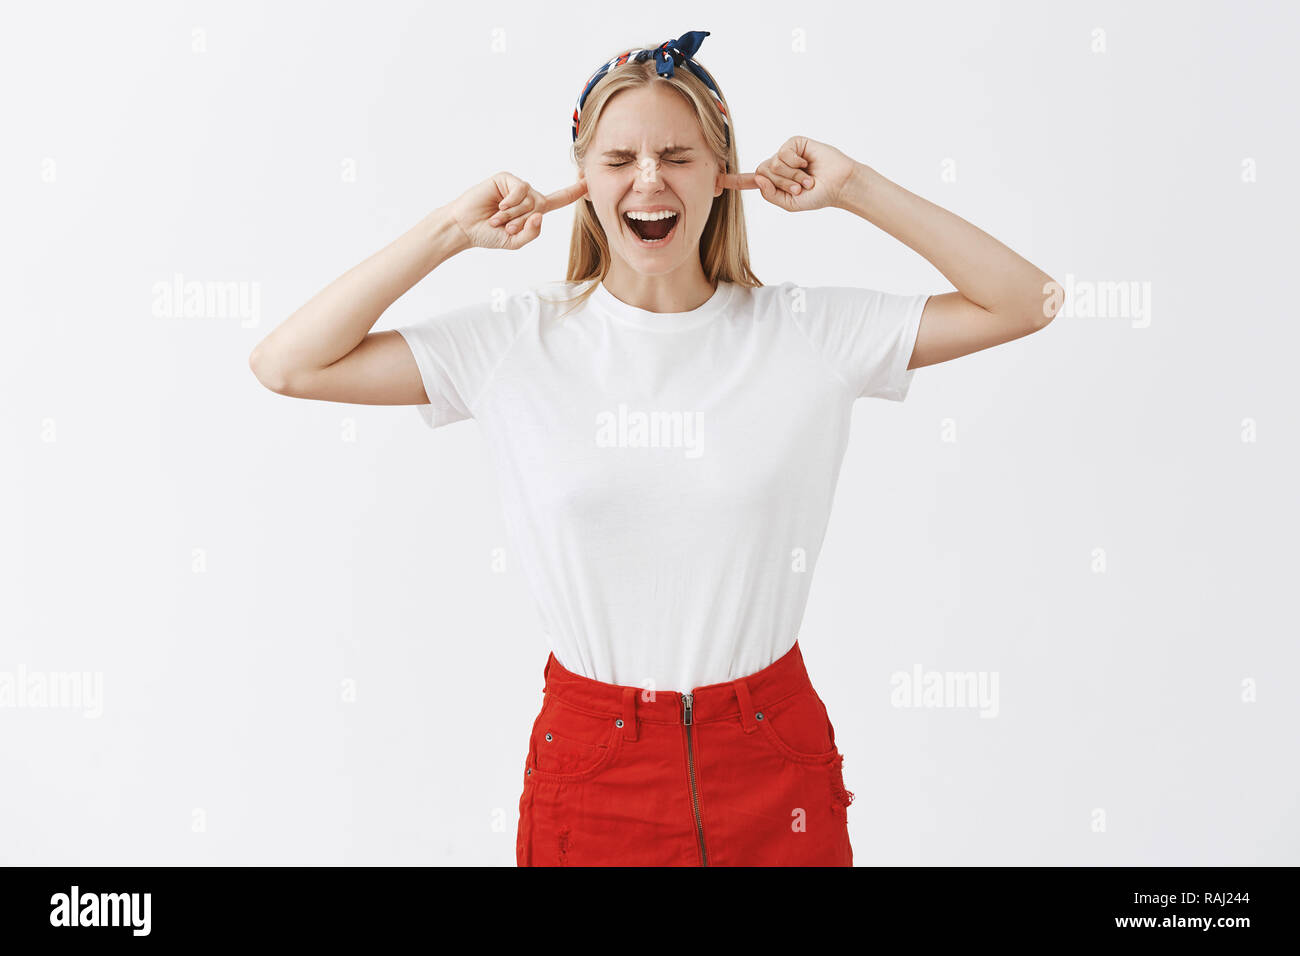 Studio shot of displeased uncomfortable good-looking blond girl in headband and red skirt, screaming with closed eyes and earplugs made from inde fingers hearing loud disturbing sound - Stock Image